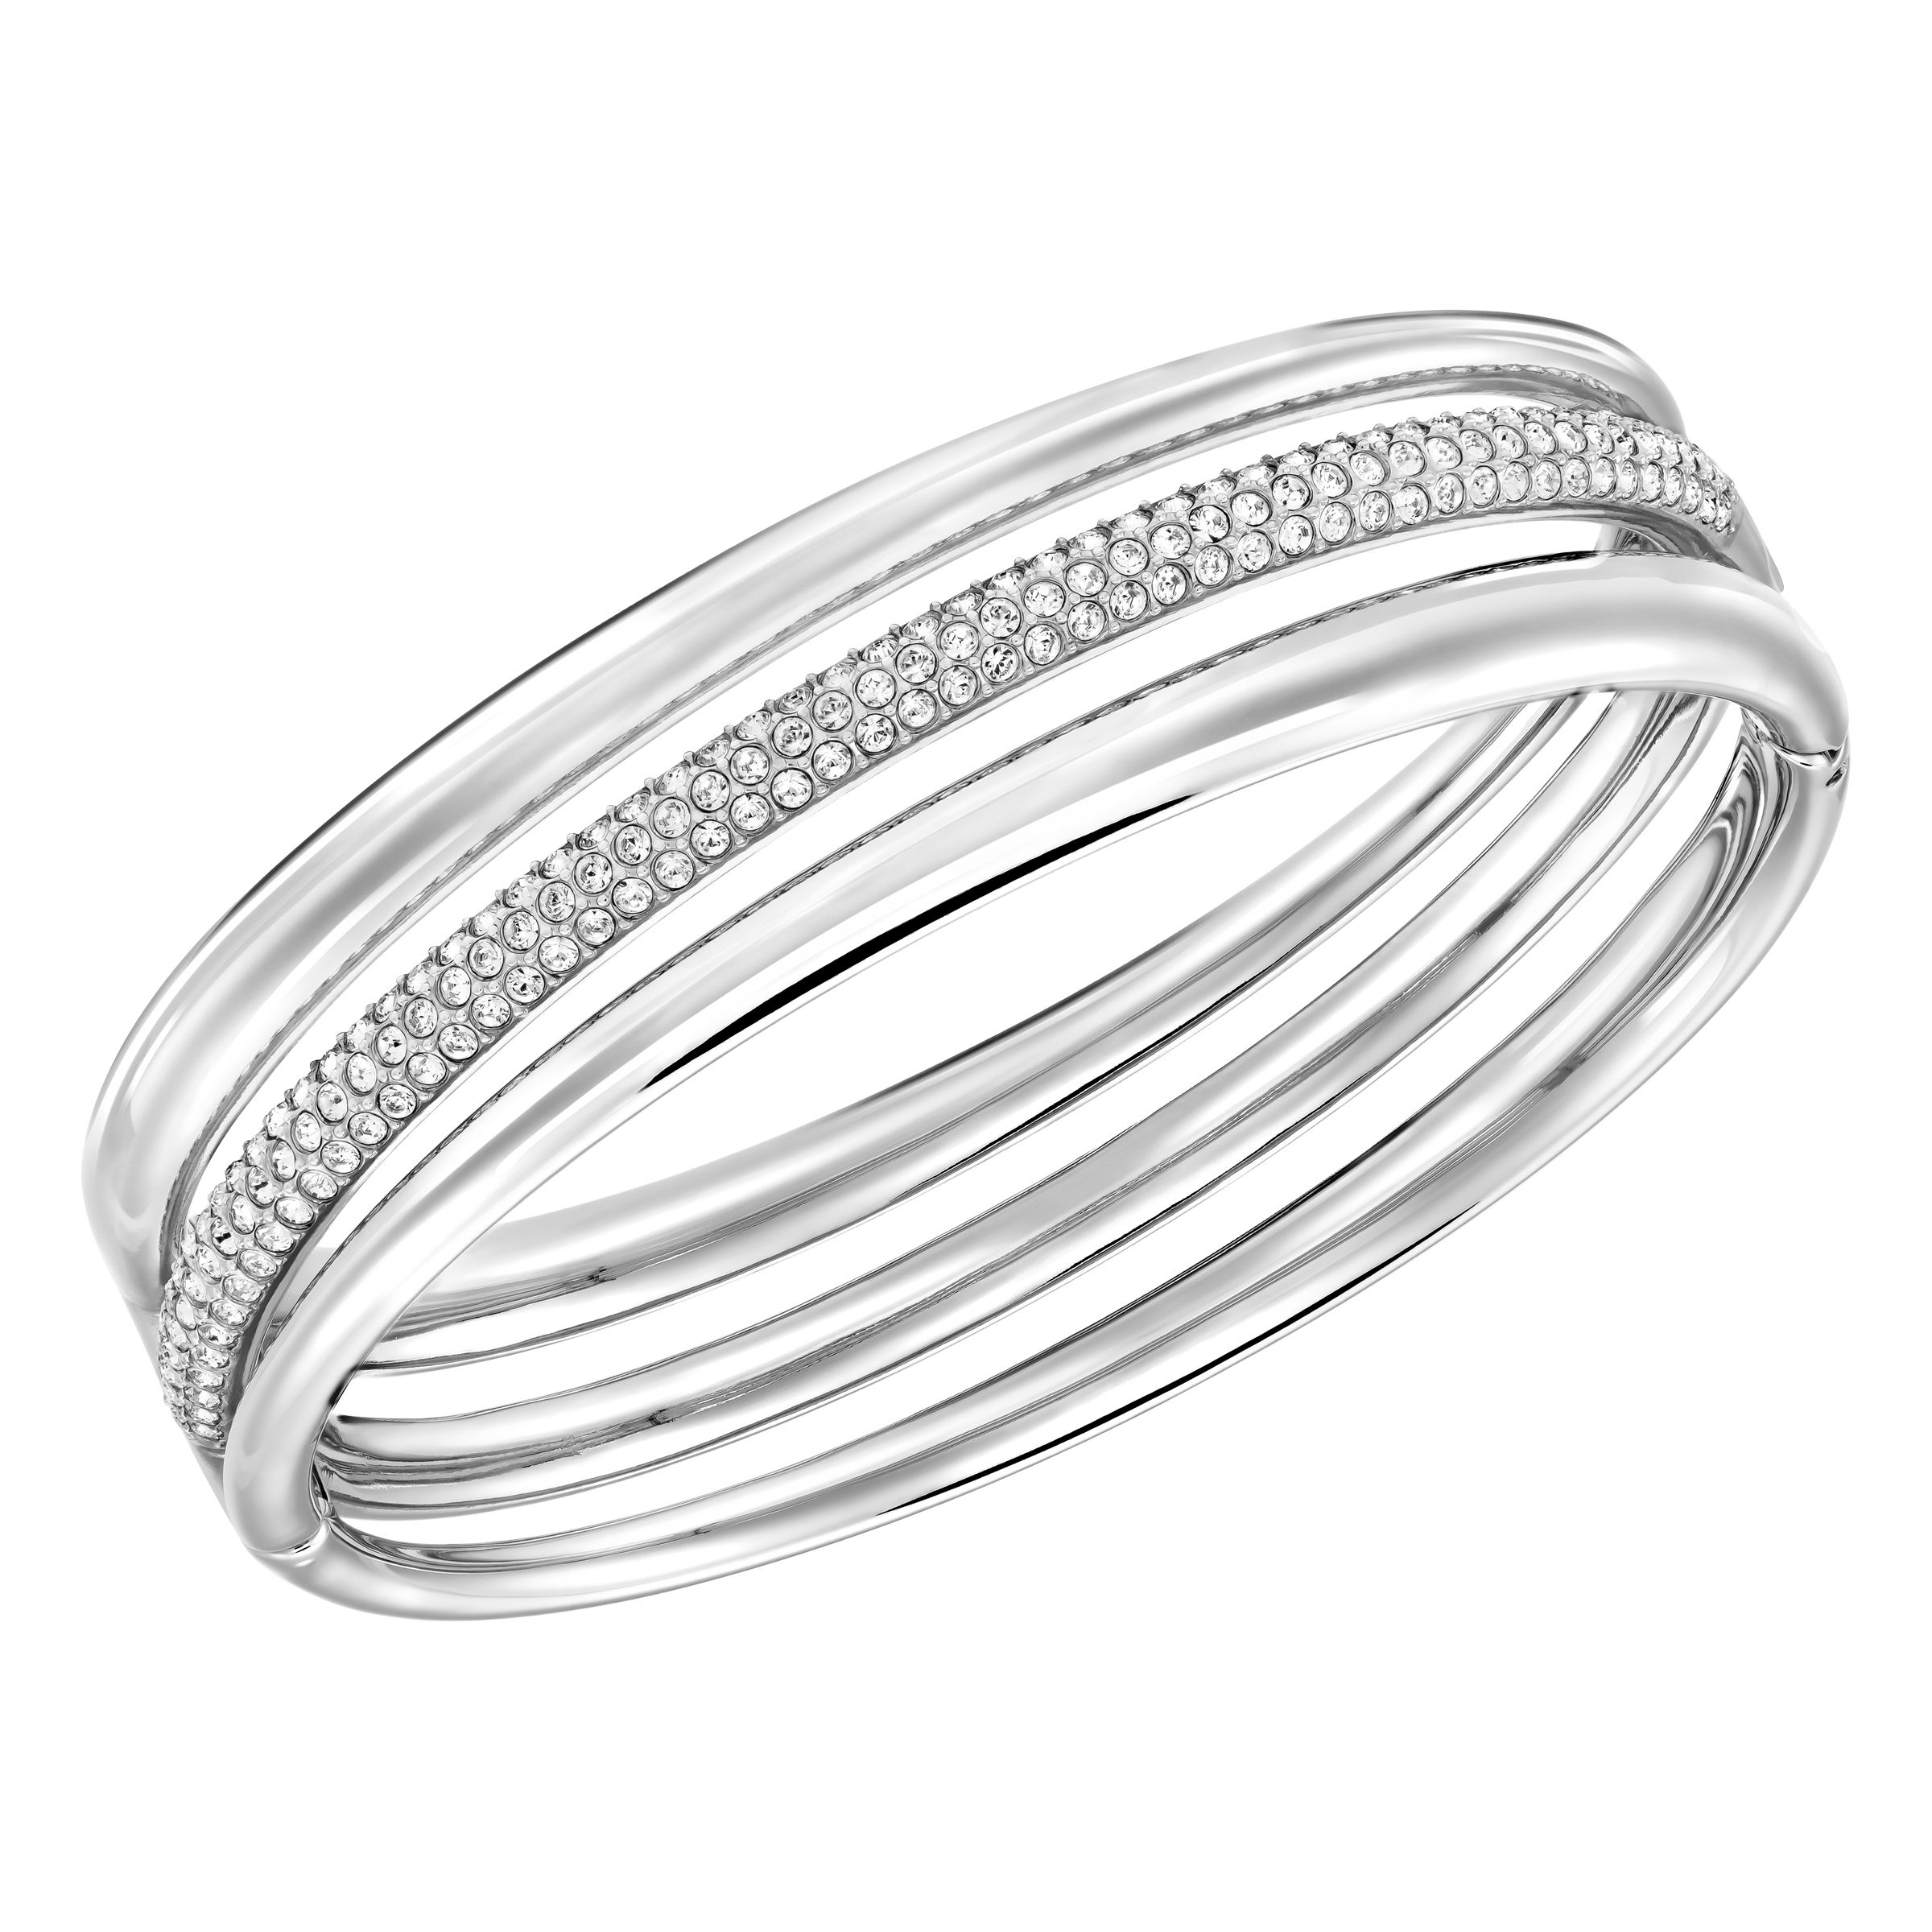 Swarovski Exact bangle, Silver